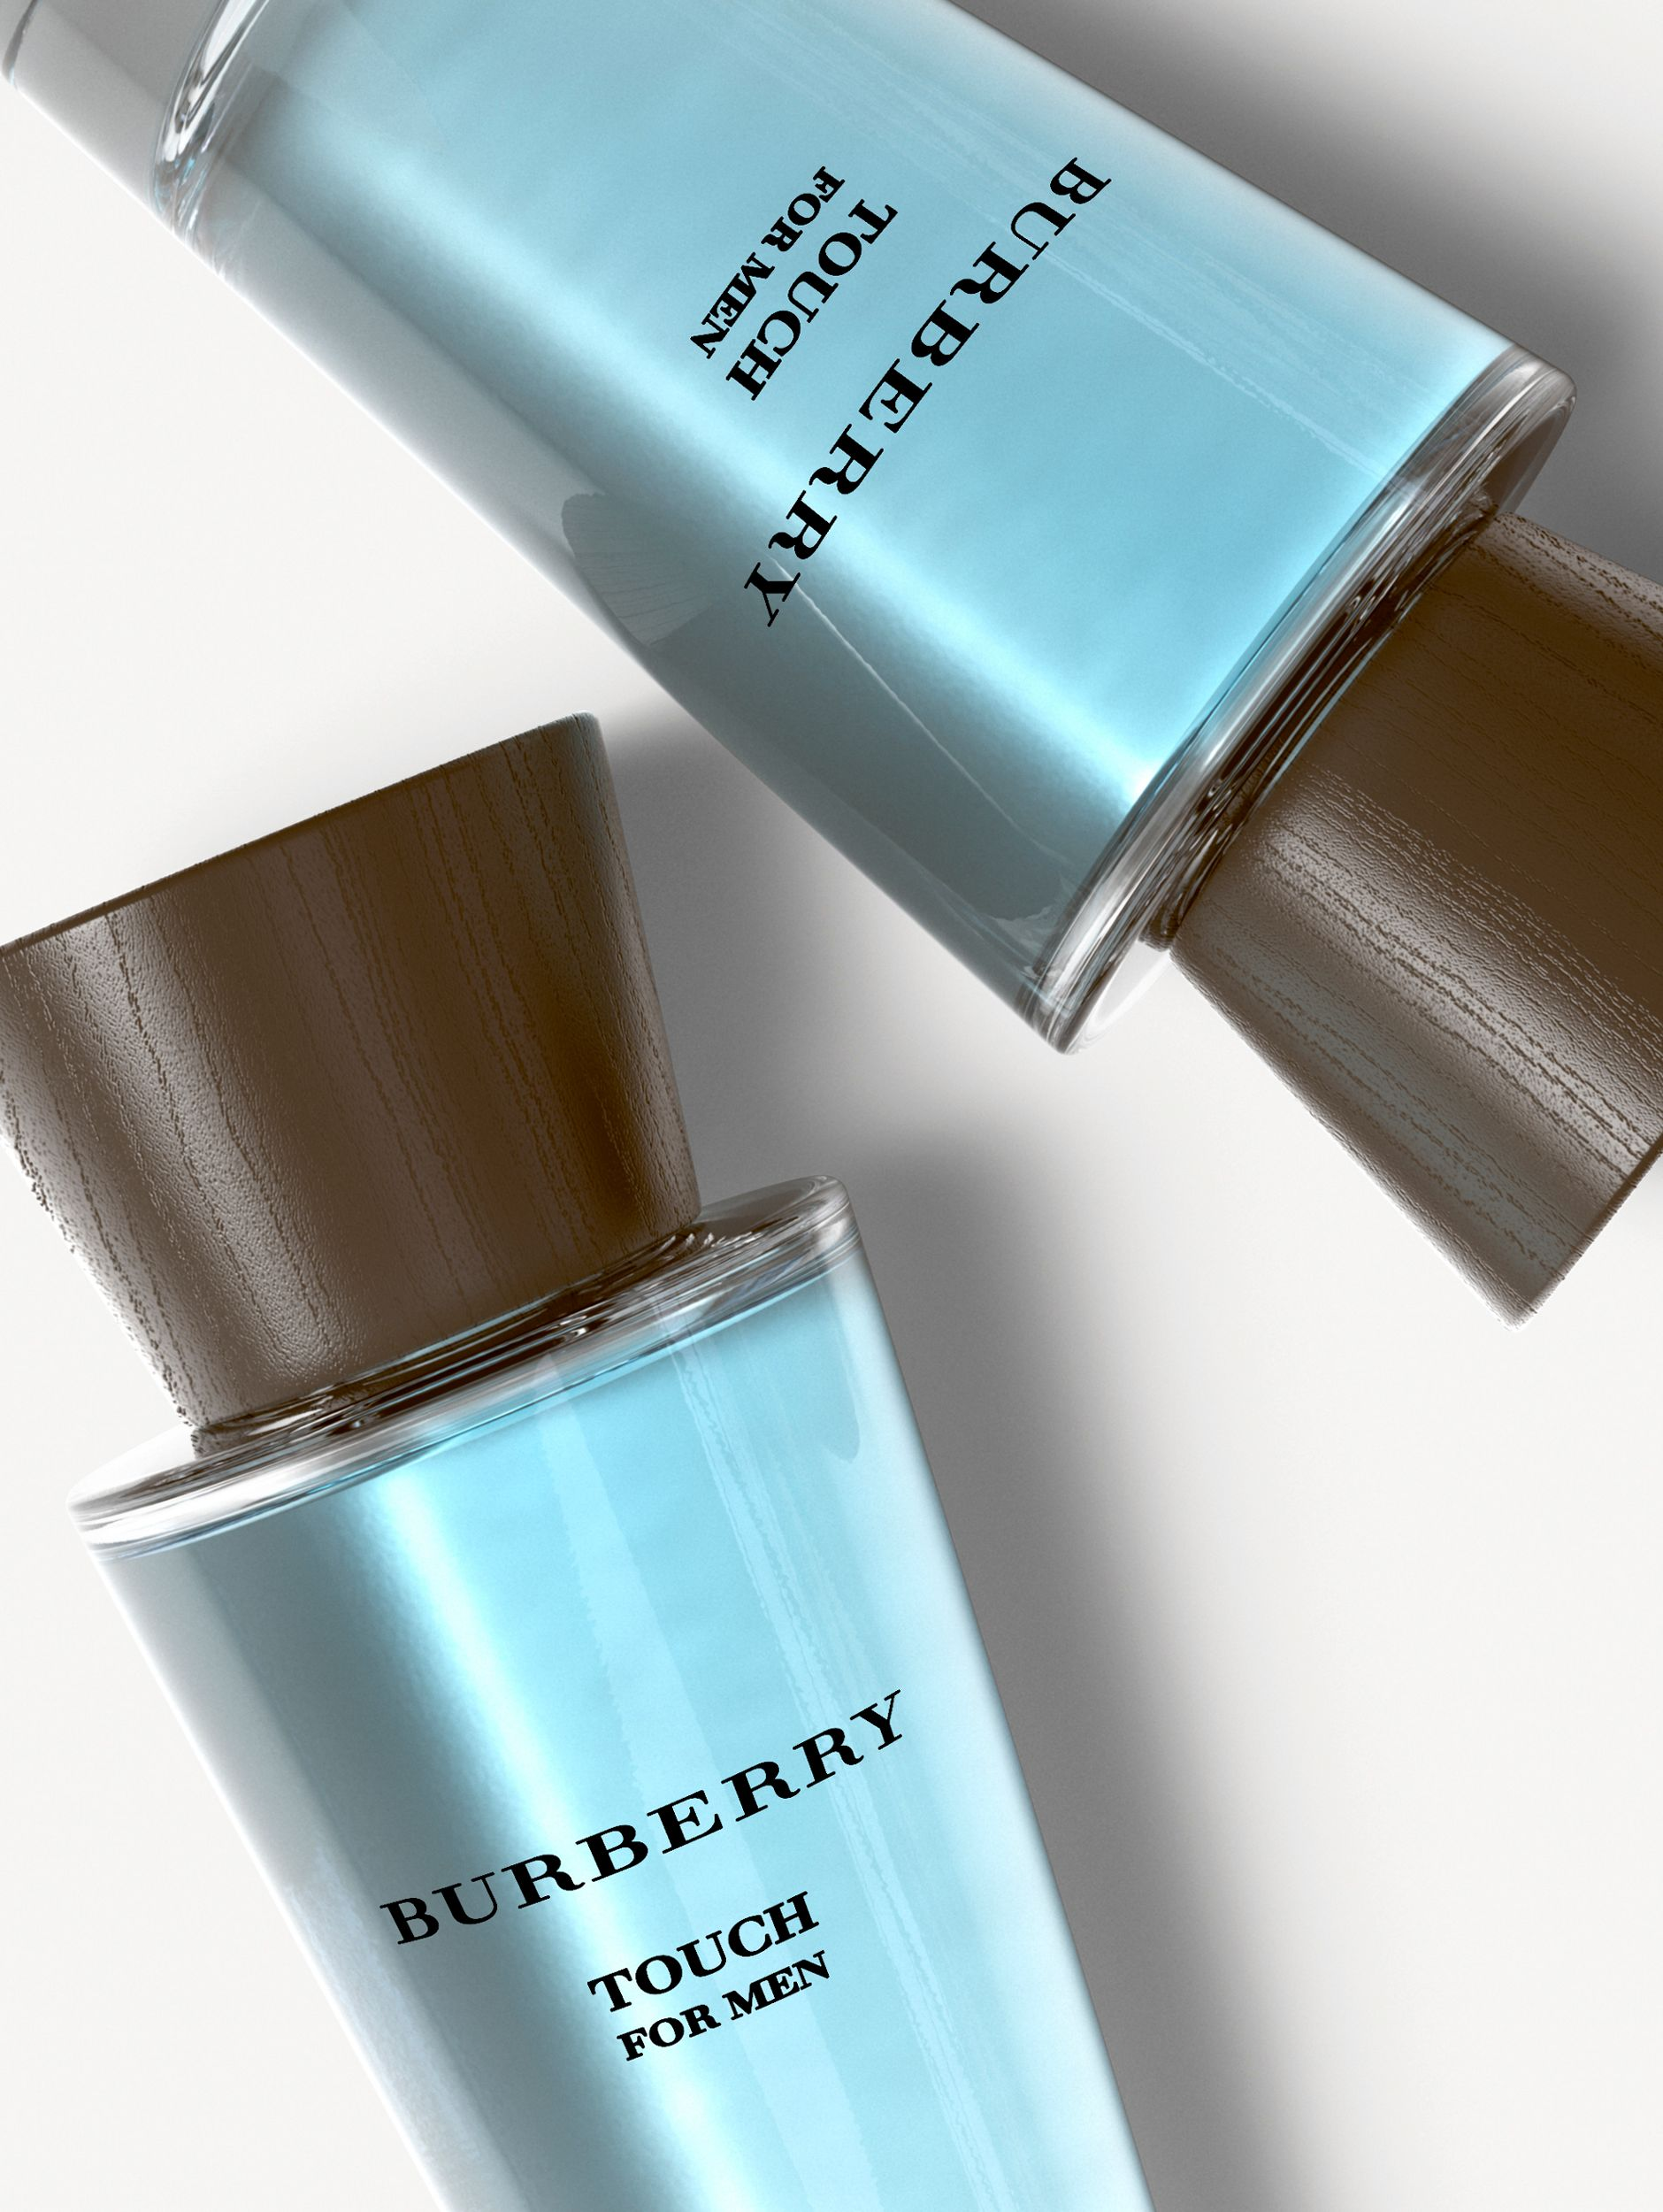 Burberry Touch Eau de Toilette 100ml - Men | Burberry - 2